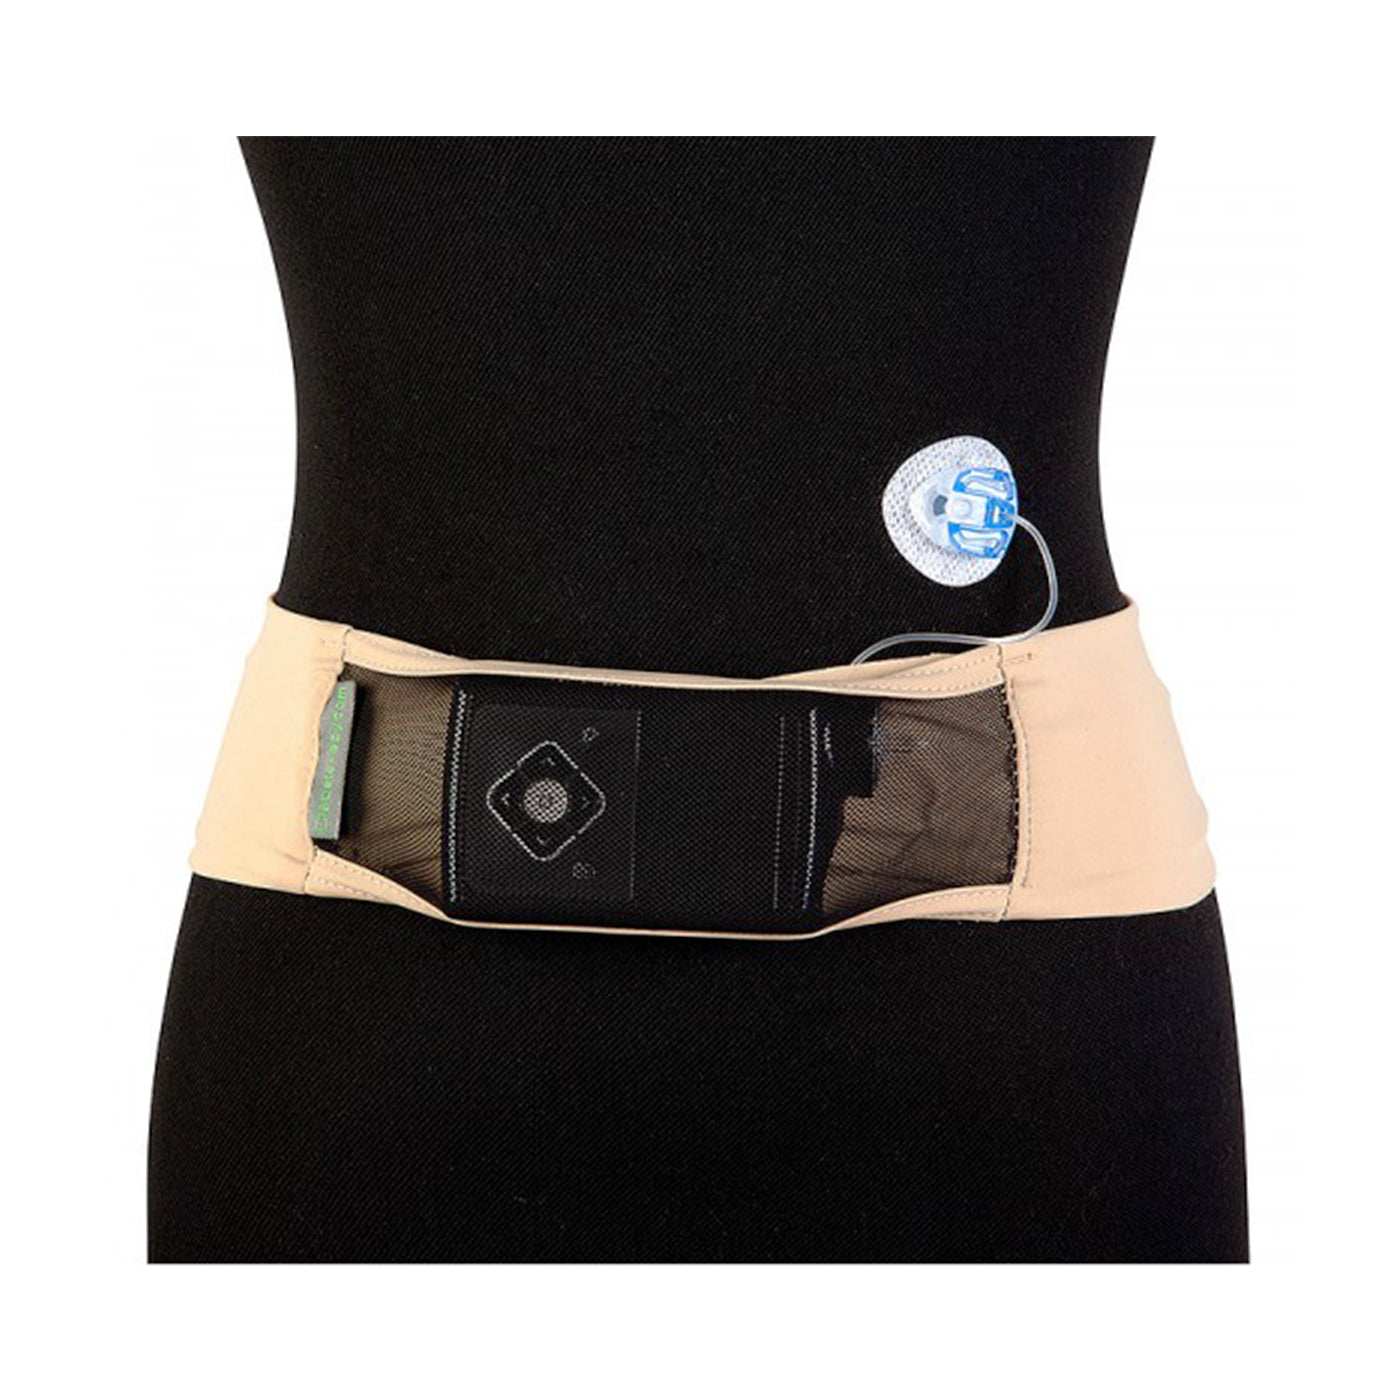 Diabete-ezy View Pump Belt Nude